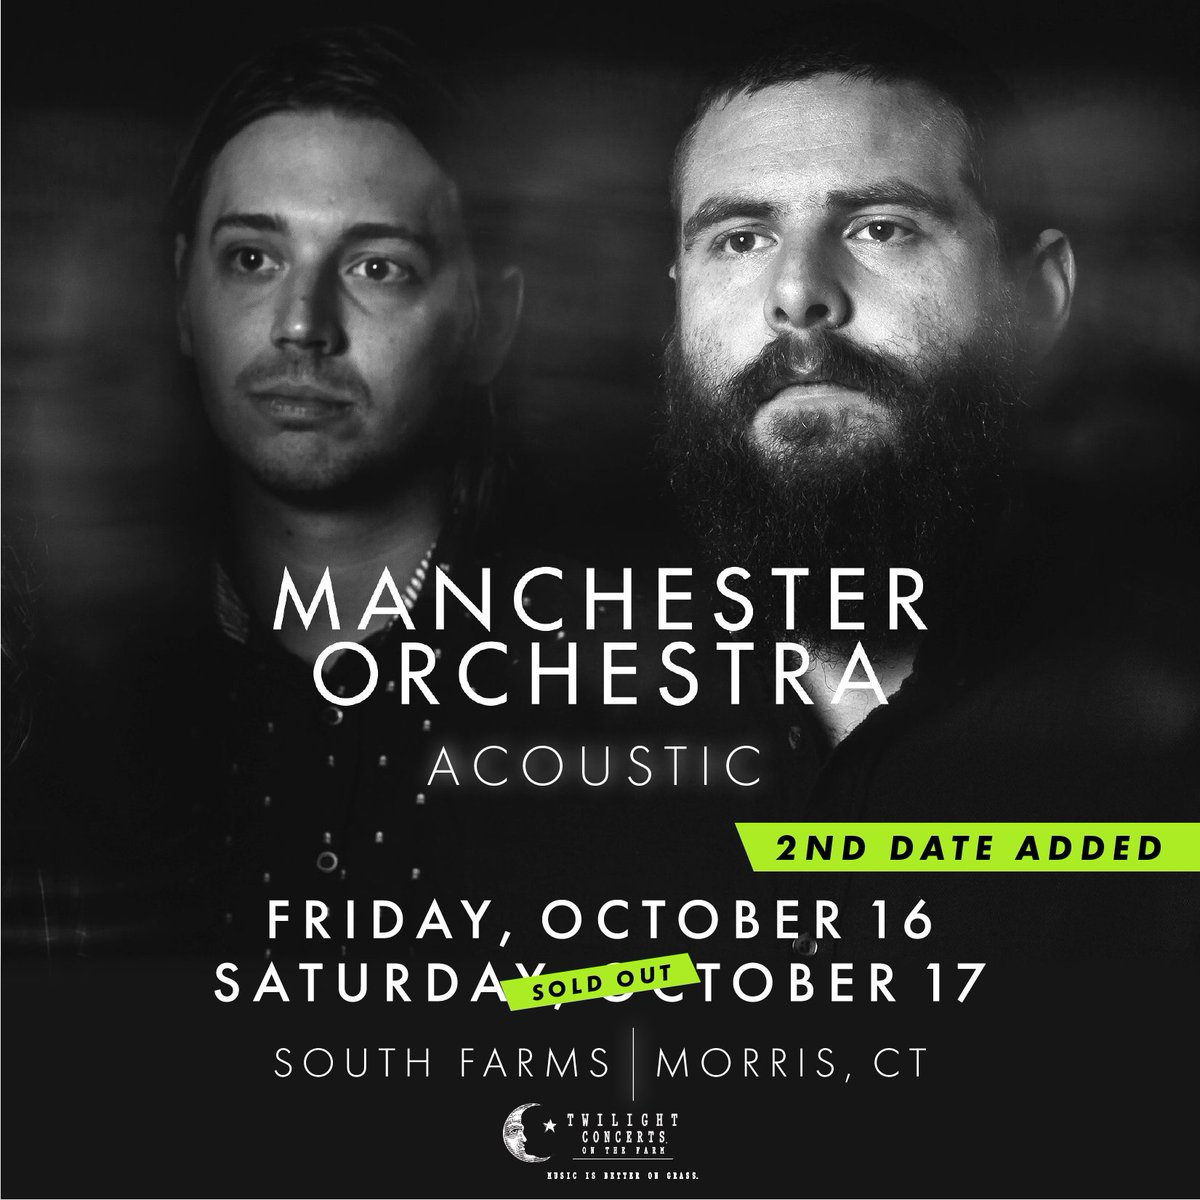 Our first show at South Farms in Morris, CT is officially sold out!   A second show on Friday, October 16 has been added and tickets are on sale now: https://t.co/al8S5l6RuJ https://t.co/e76IapRm5k